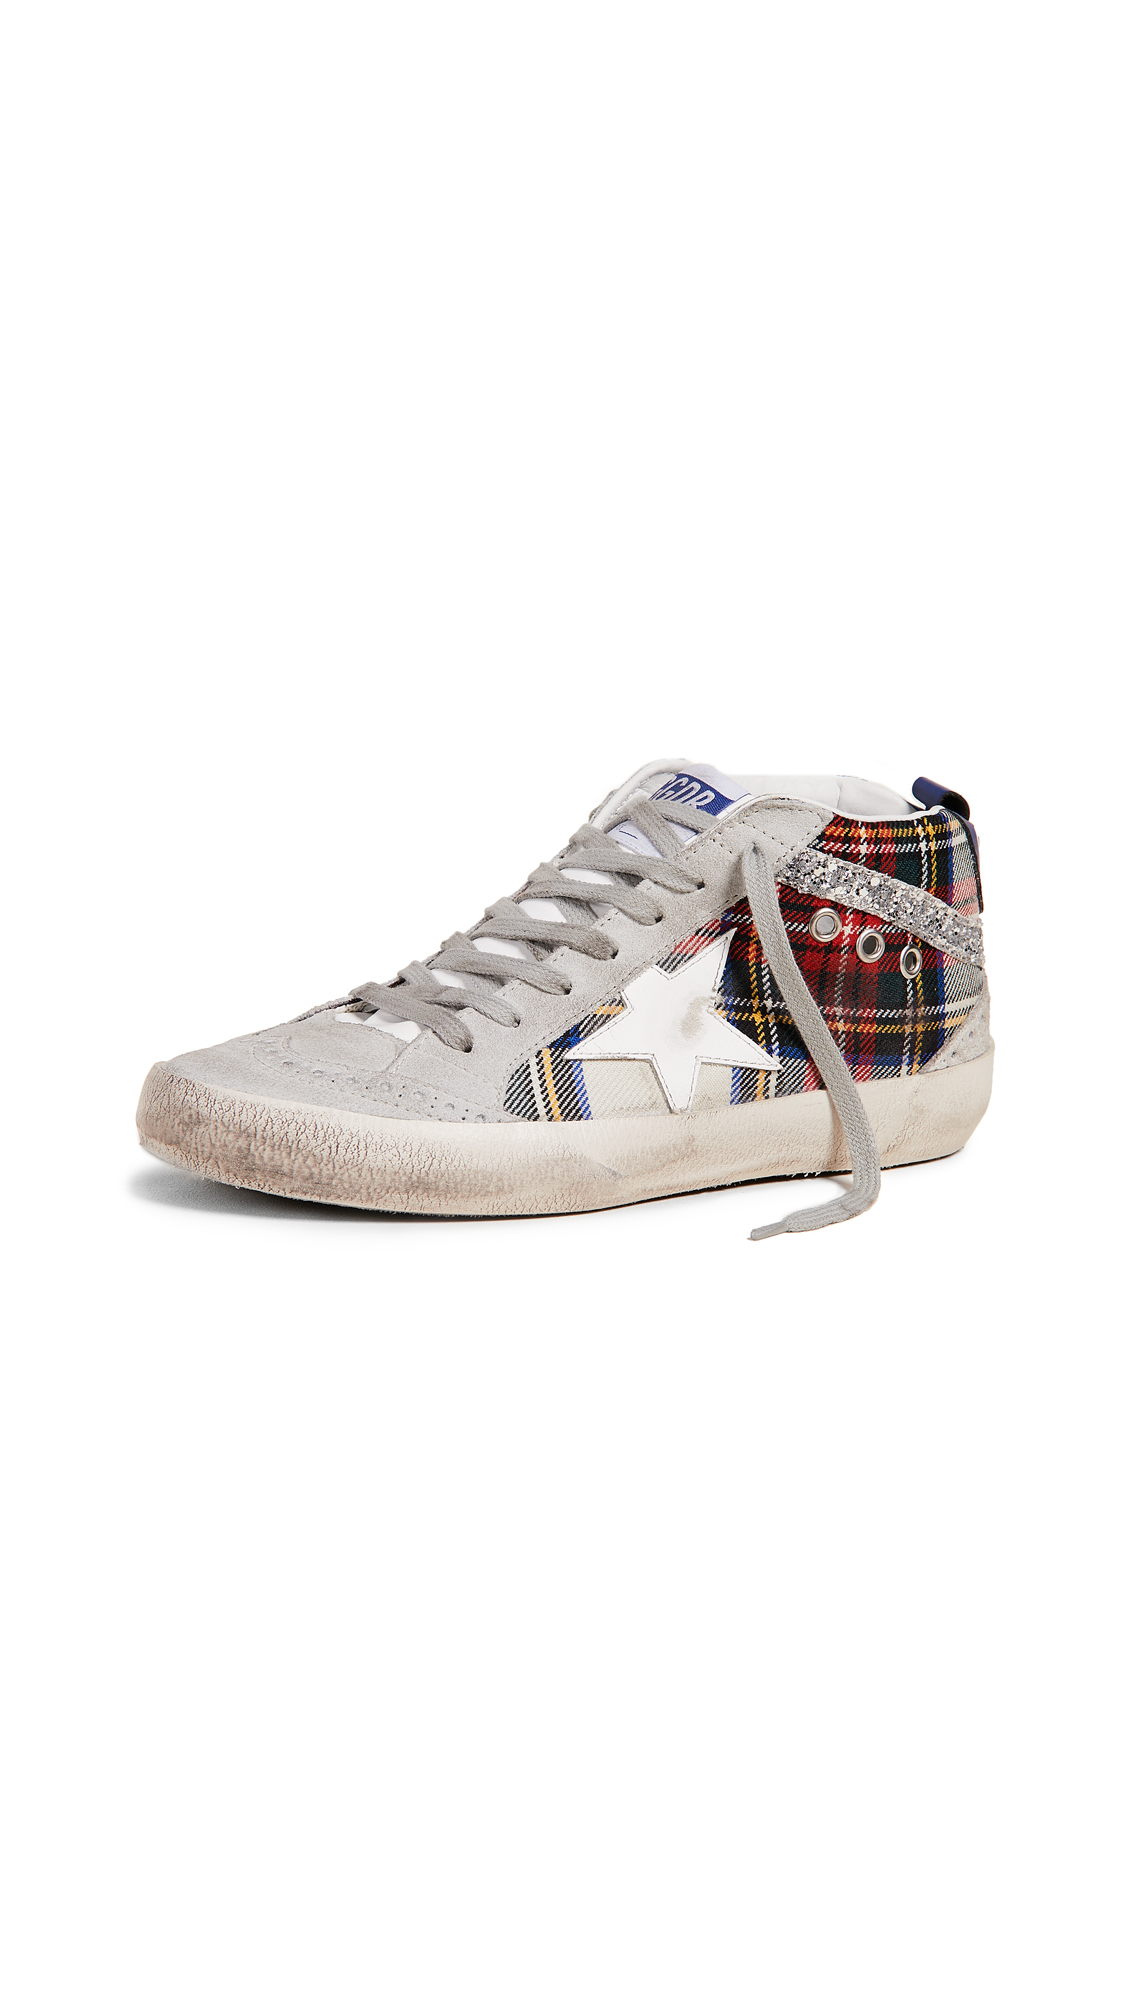 Golden Goose Mid Star Sneakers - Red/Ice/Silver